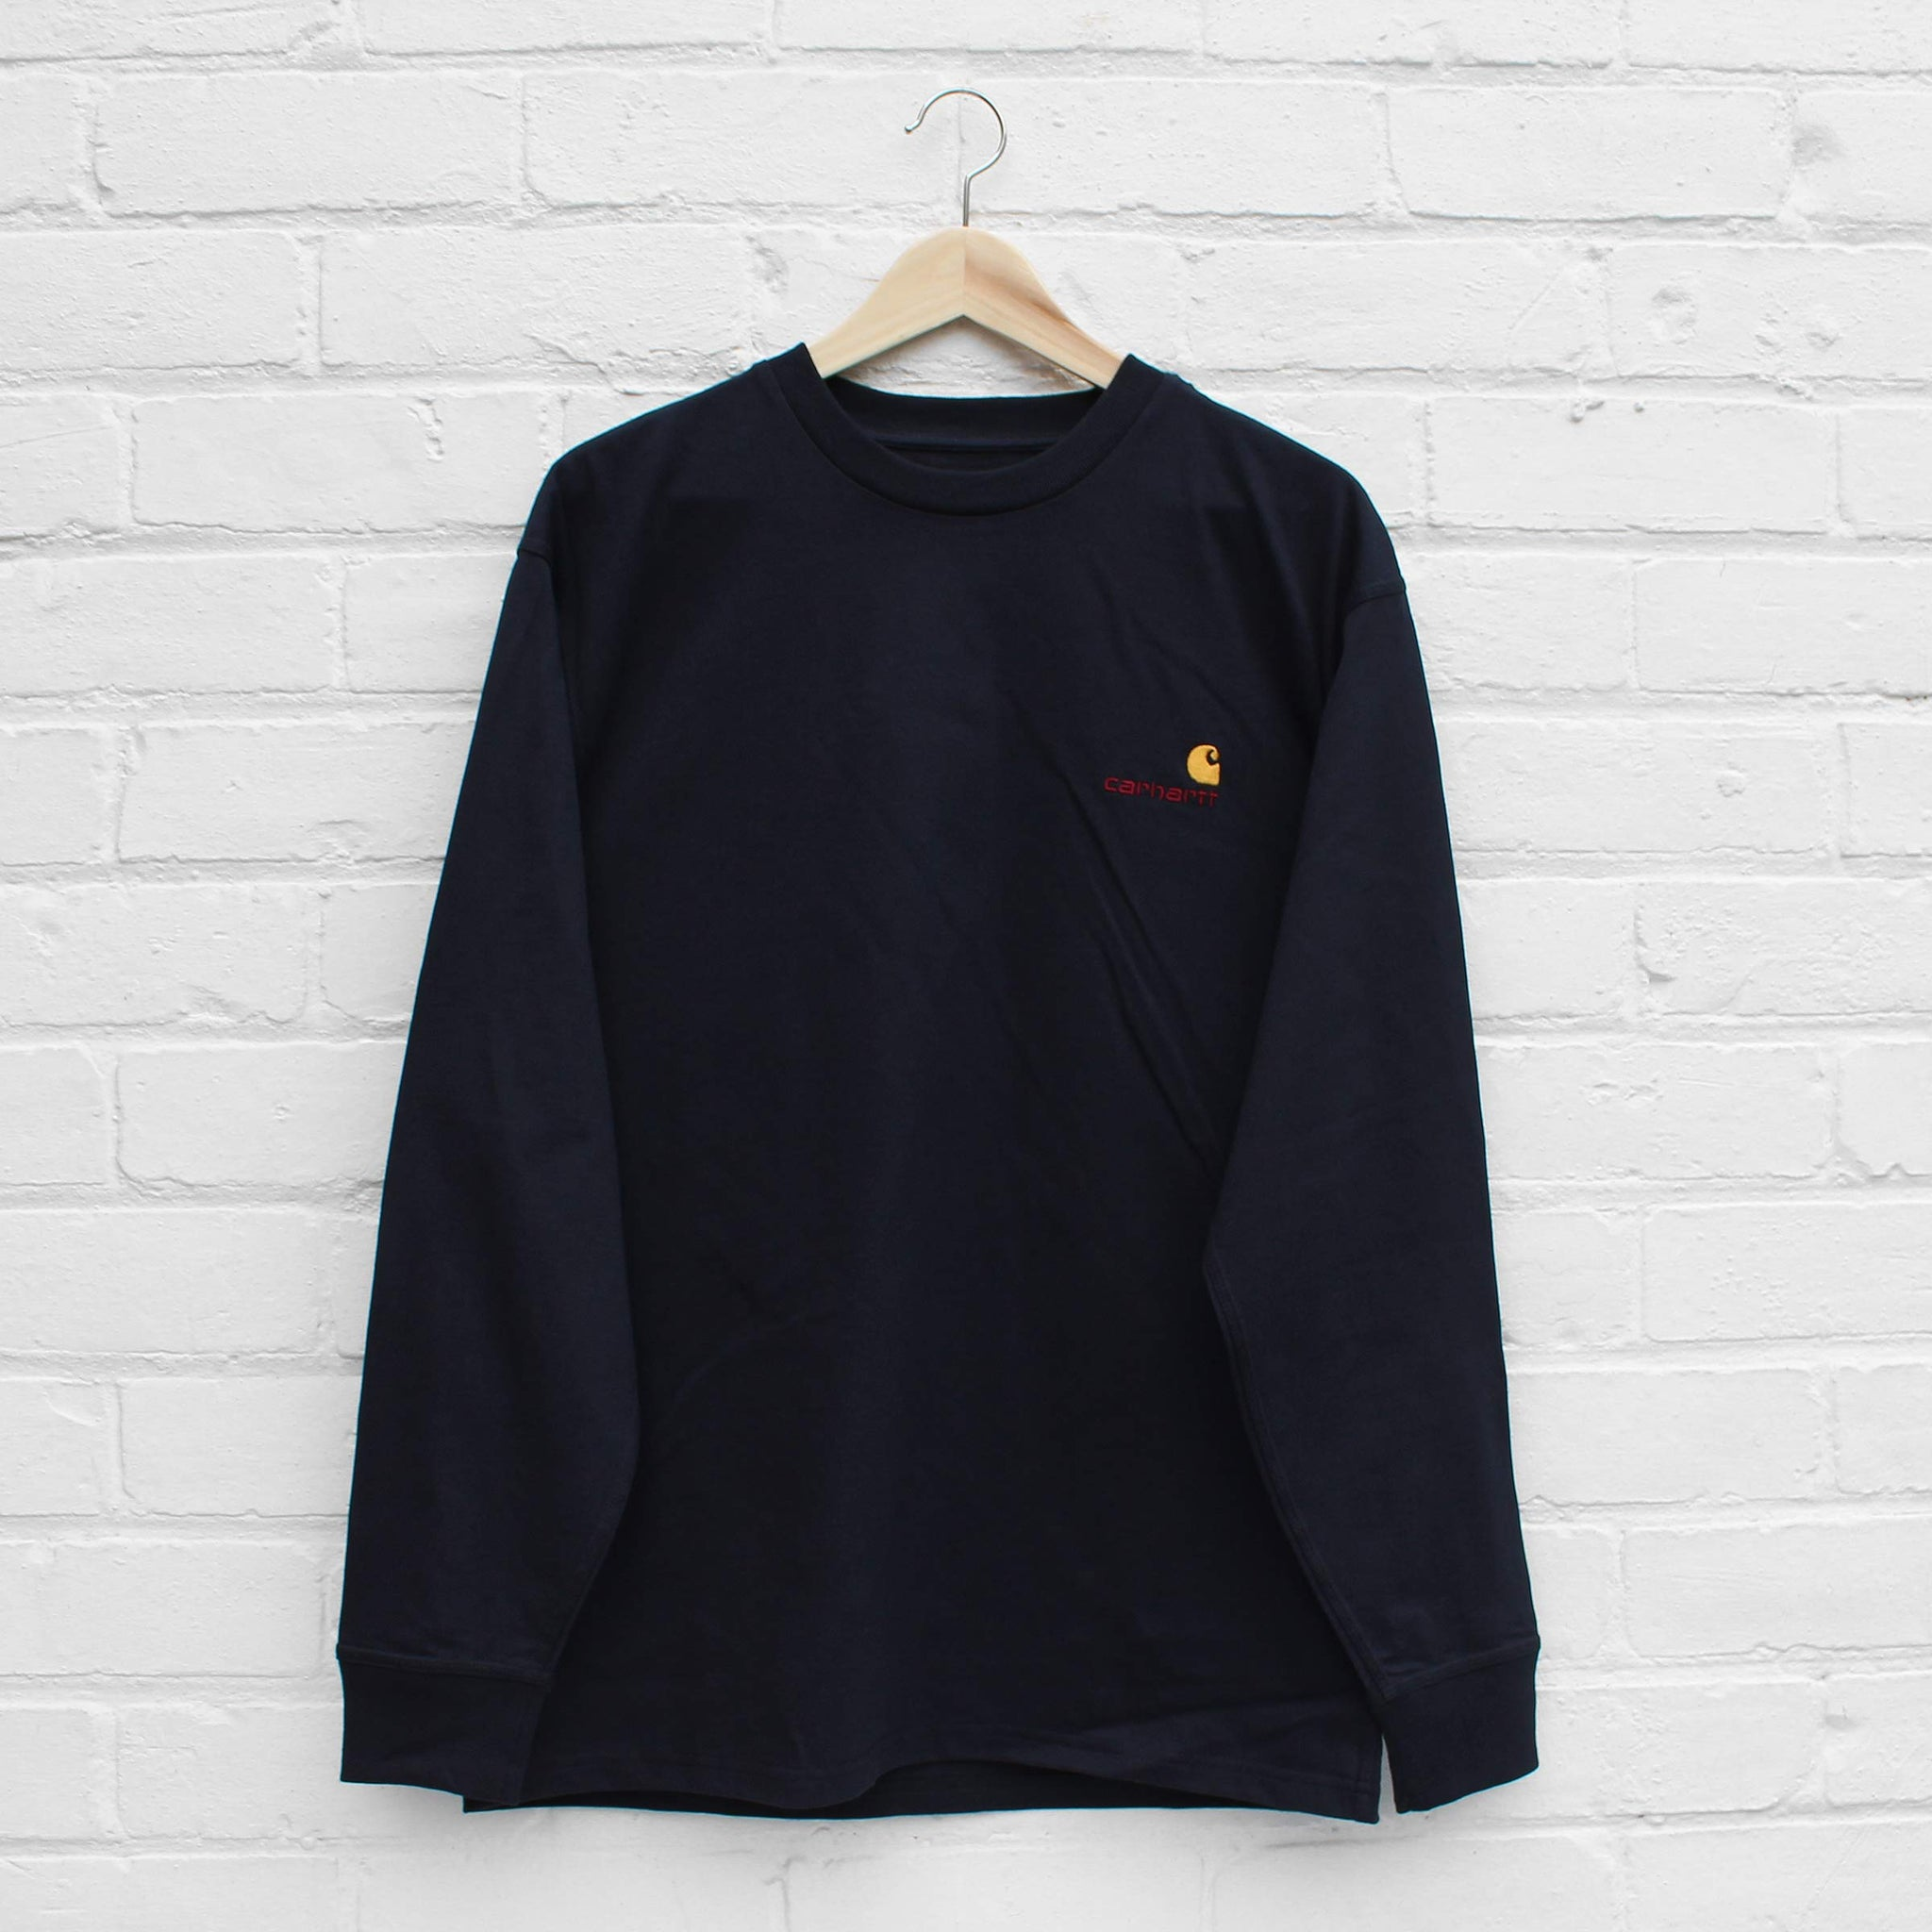 Carhartt WIP American Script Long Sleeve T-Shirt  Dark Navy